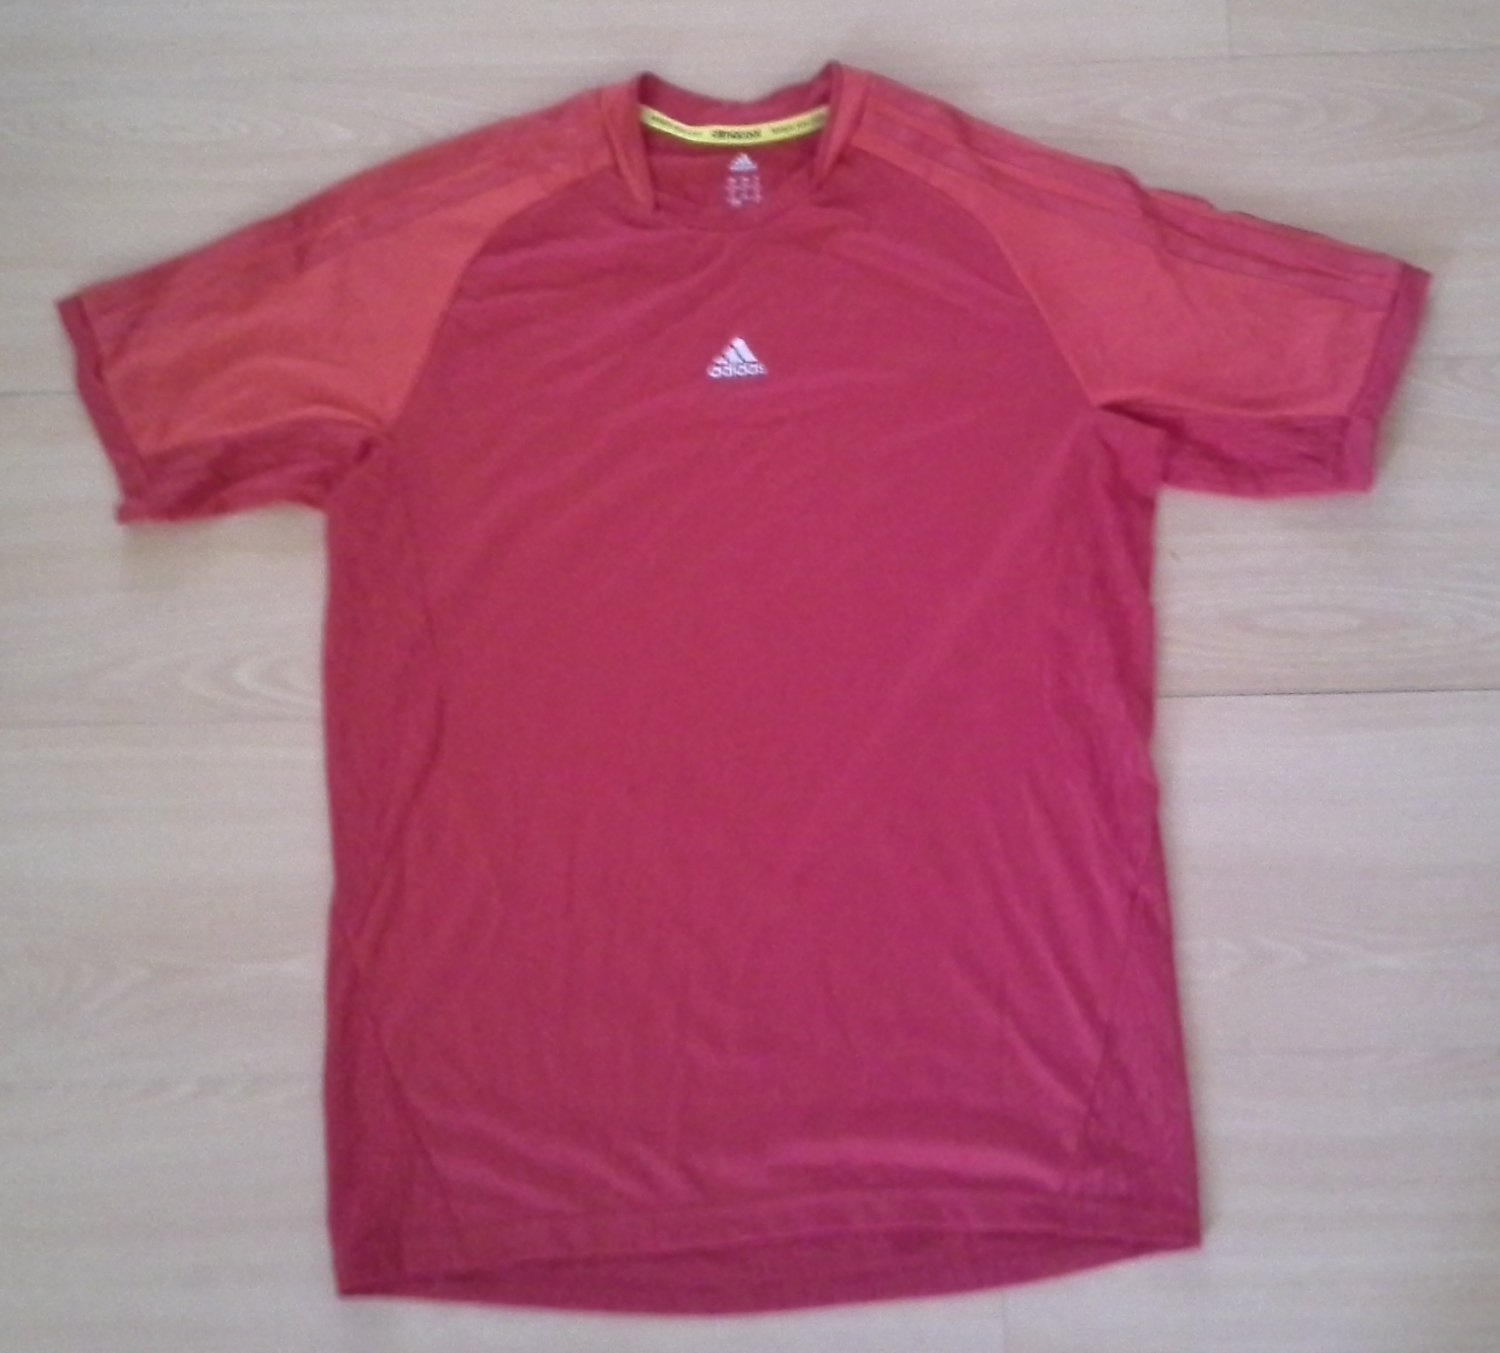 Adidas Climacool Tee Shirt Red Men's Medium Core Training Top T Z32903